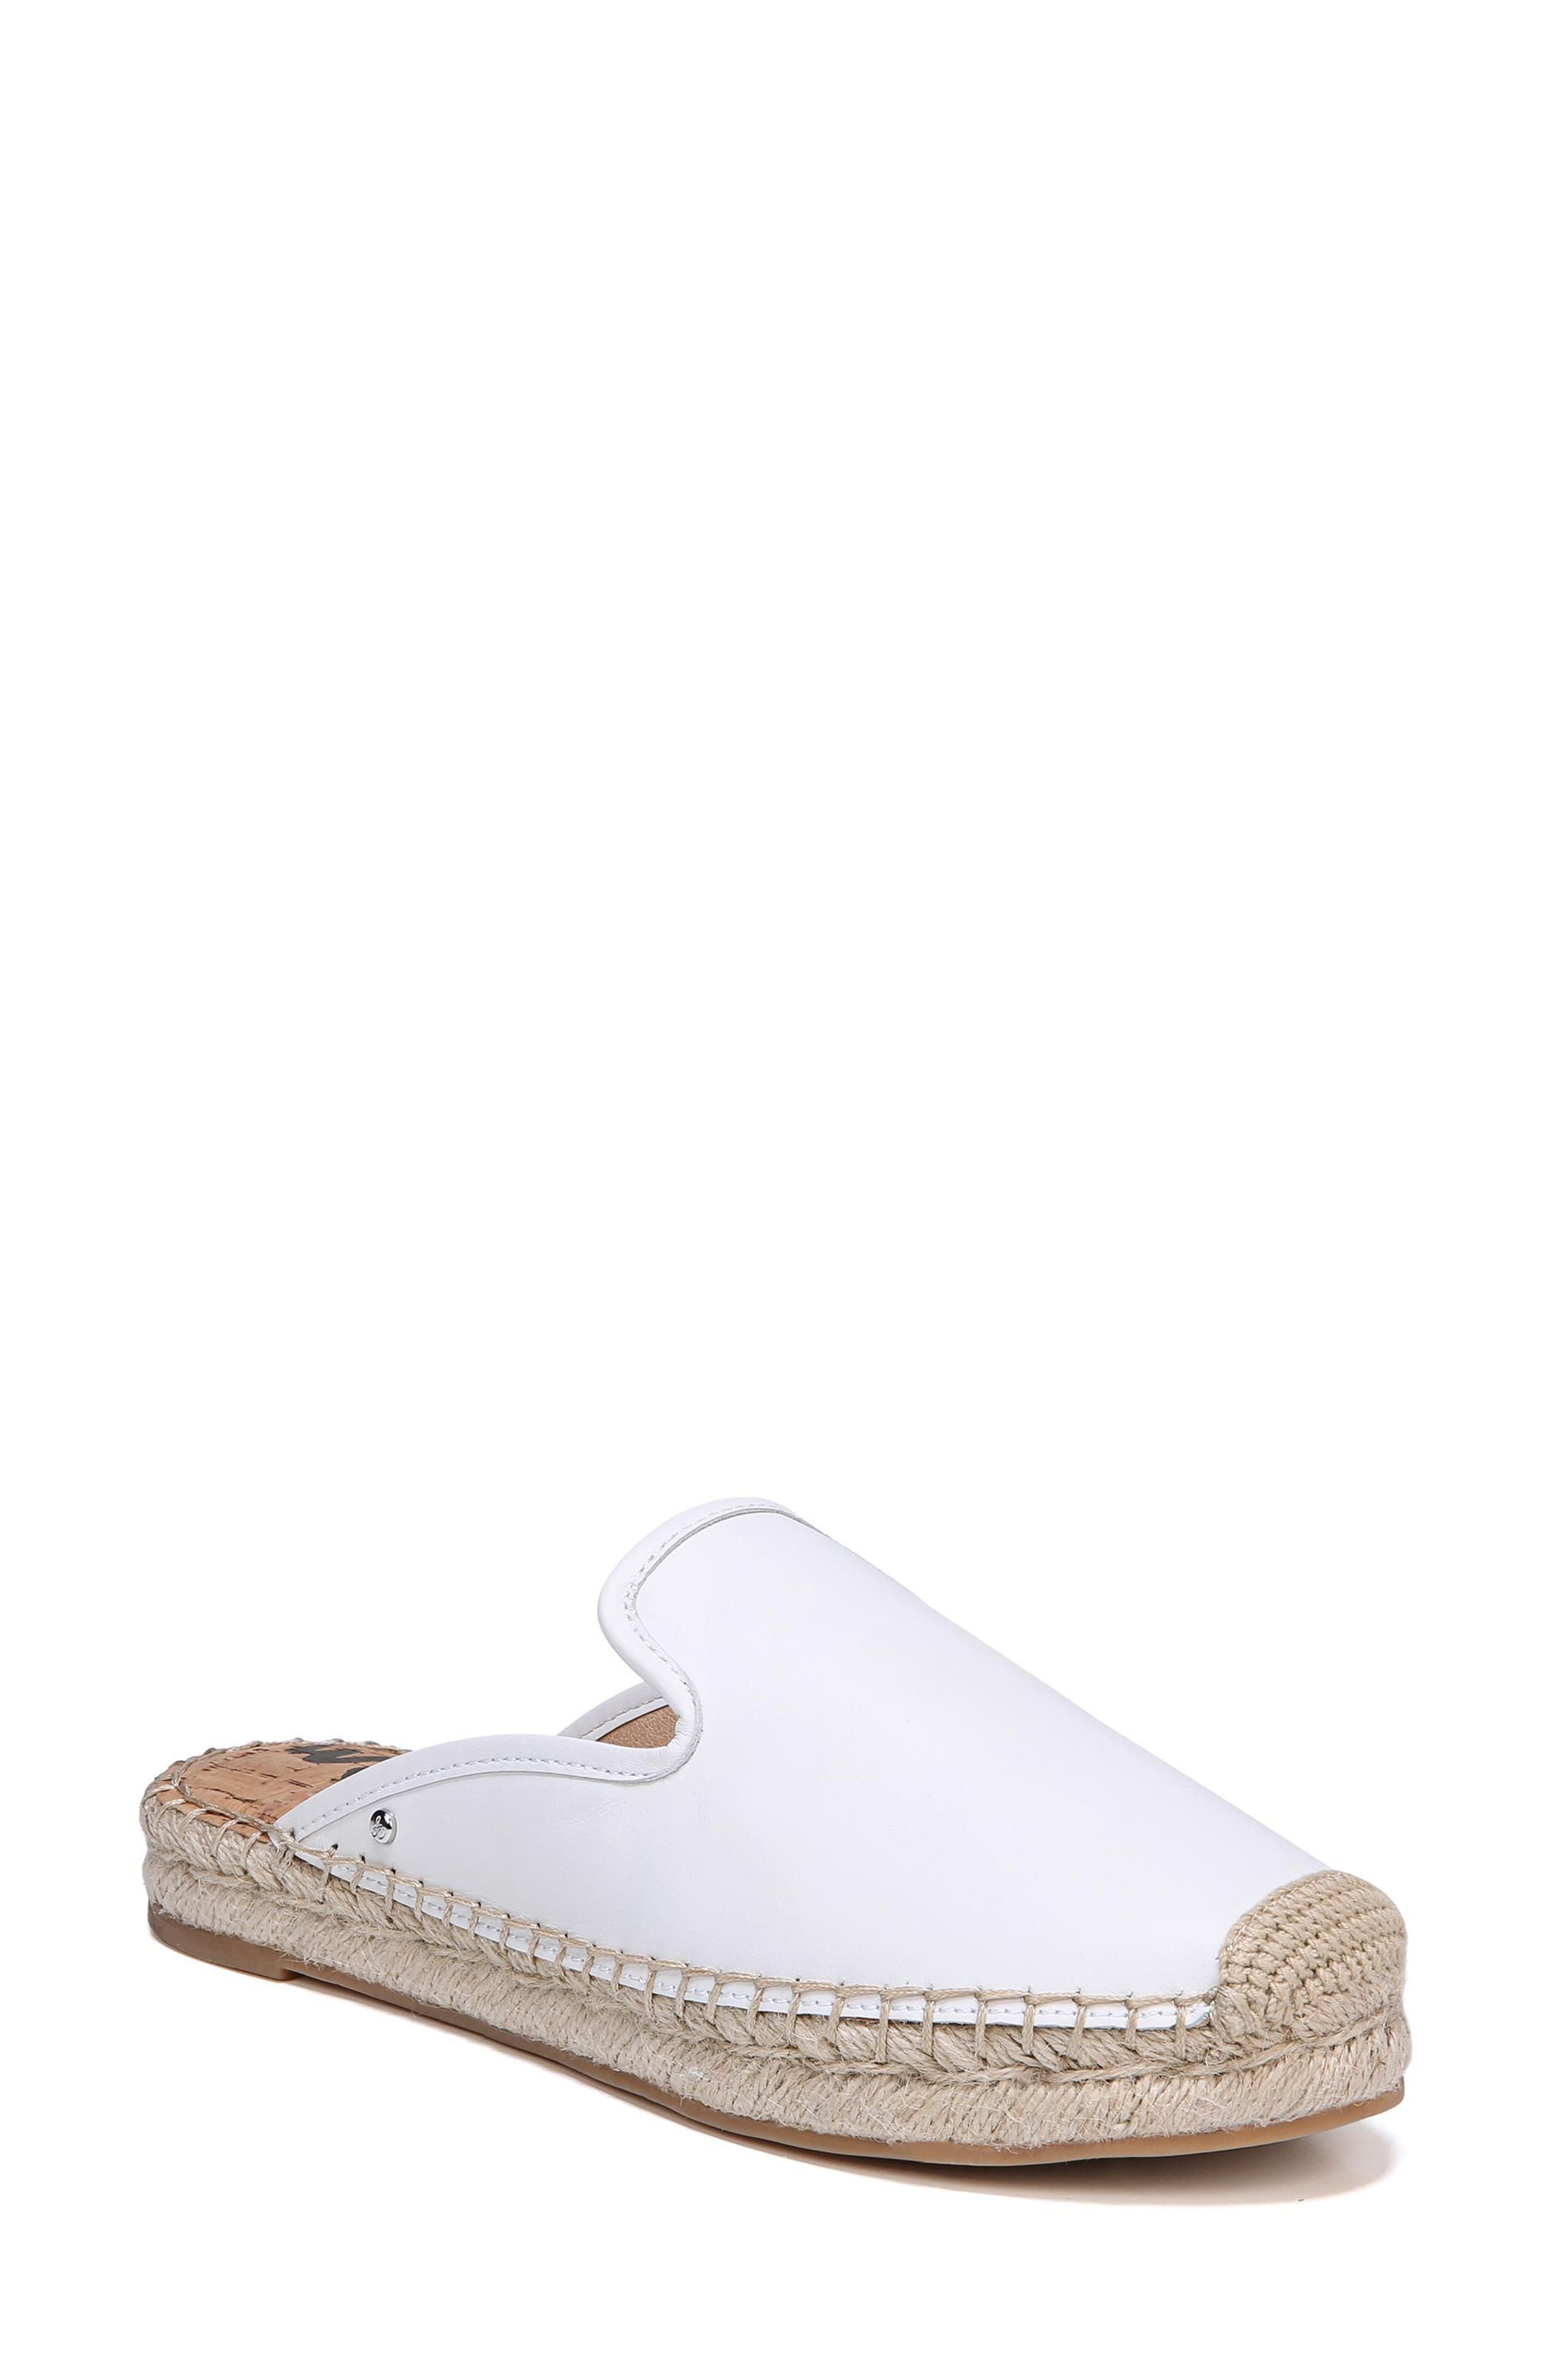 Kerry Espadrille Mule,                         Main,                         color, Bright White Leather